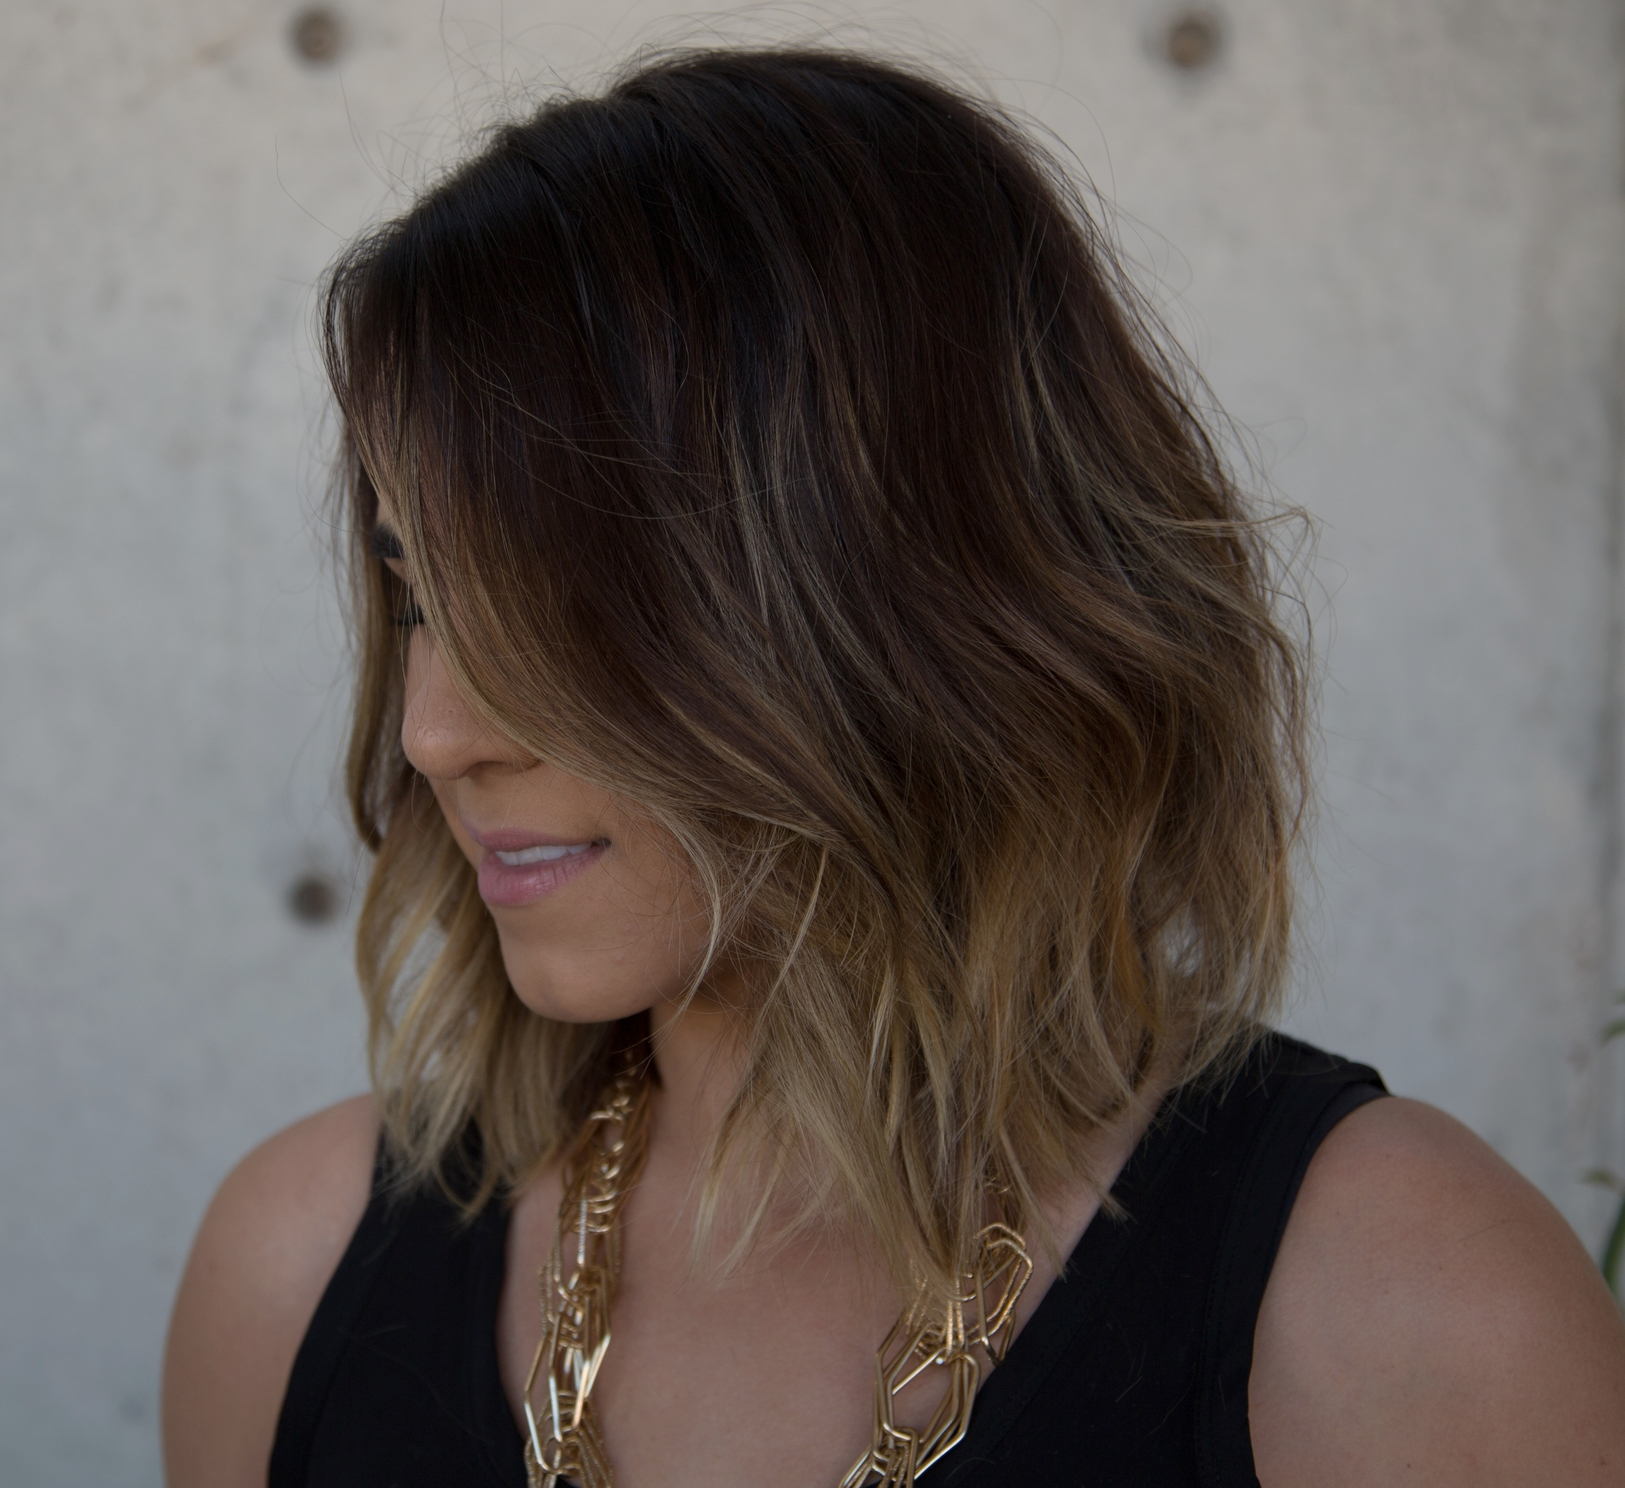 Hair Cut Tutorial On The Long Bob Confessions Of A Hairstylist